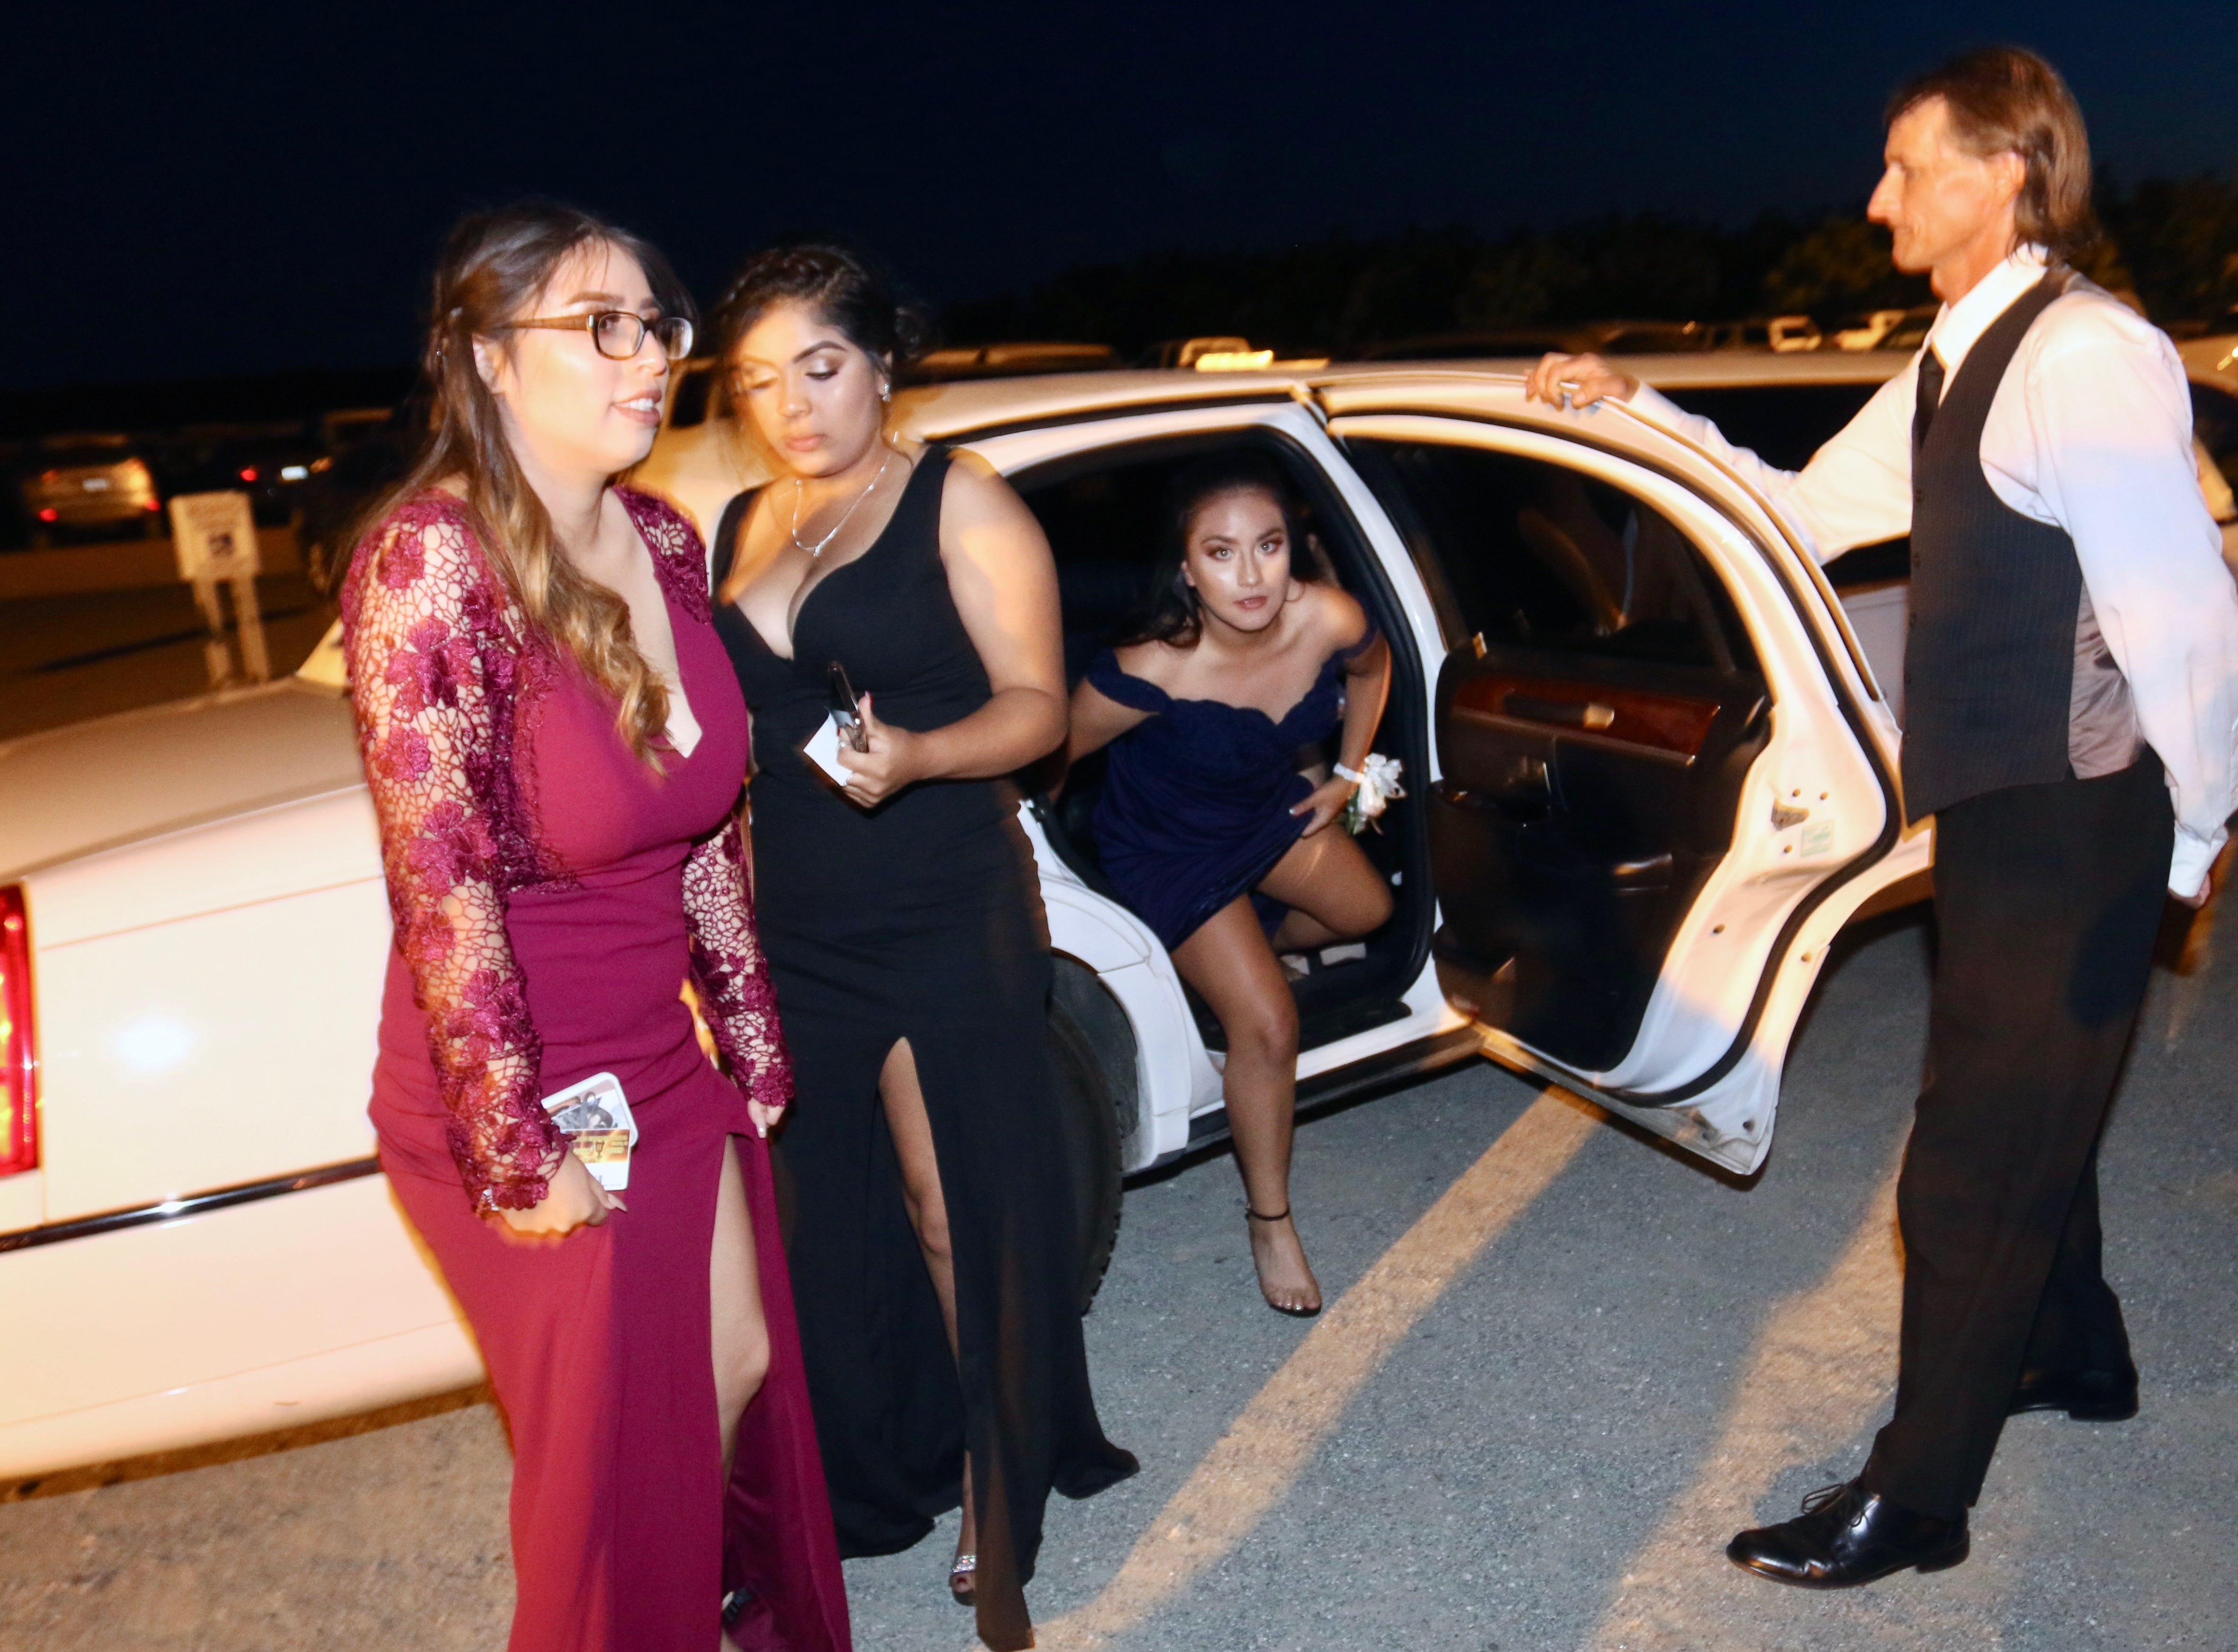 Tulare Joint Union High School District students attended prom on Saturday, May 4, 2019.